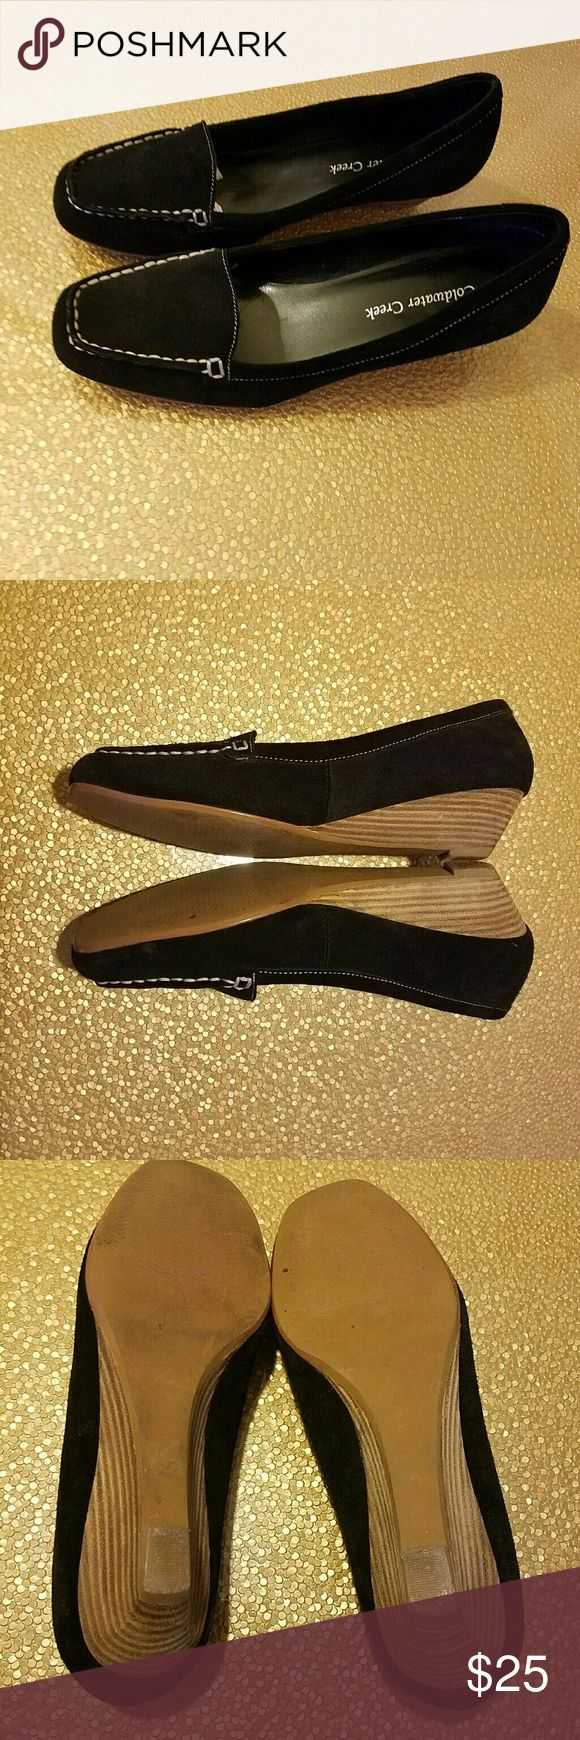 Coldwater Creek Black Suede Low Wedge Loafers, 8 Great condition, suede is unblemished.  Only slight wear is on the heel (shown in the pictures).    Heel height approximately 1.5 inches. Material: Leather.  Additional measurements: Widest Toe Box Width (4 in), Heel Width (approximately 2 in), Shoe Length (slightly longer than 10 in)  Feel free to ask me for any additional details! Coldwater Creek Shoes Wedges